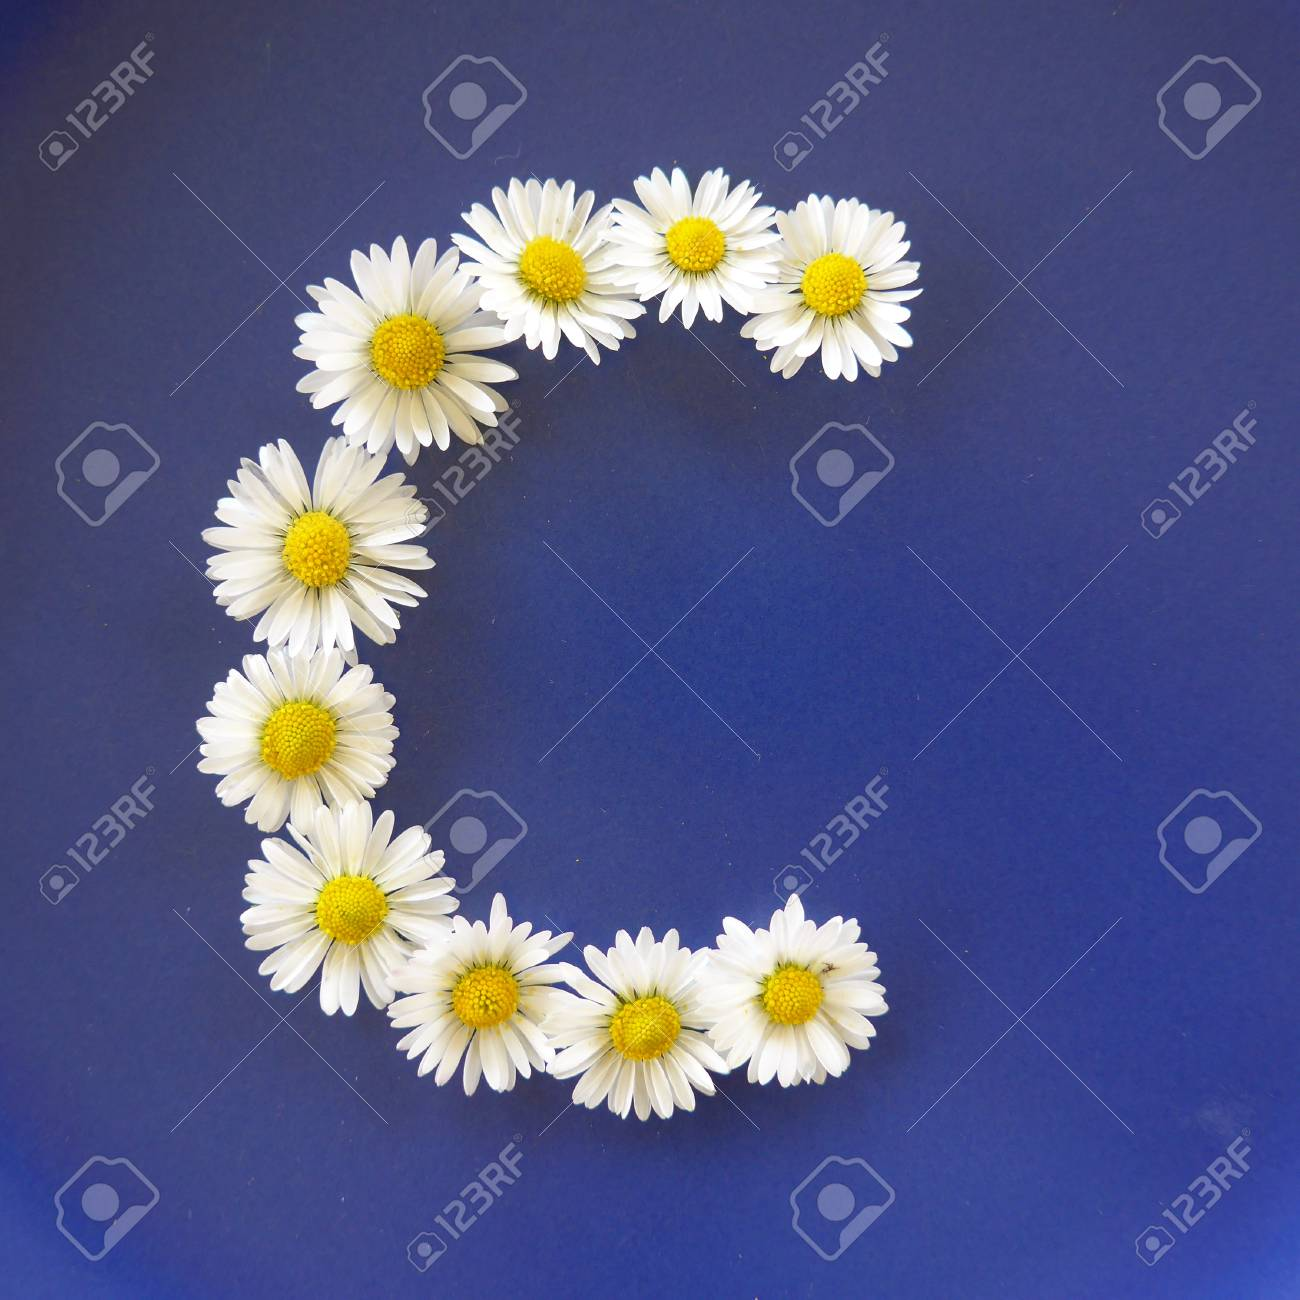 Letter c from white flowers daisies bellis perennis close up letter c from white flowers daisies bellis perennis close up on izmirmasajfo